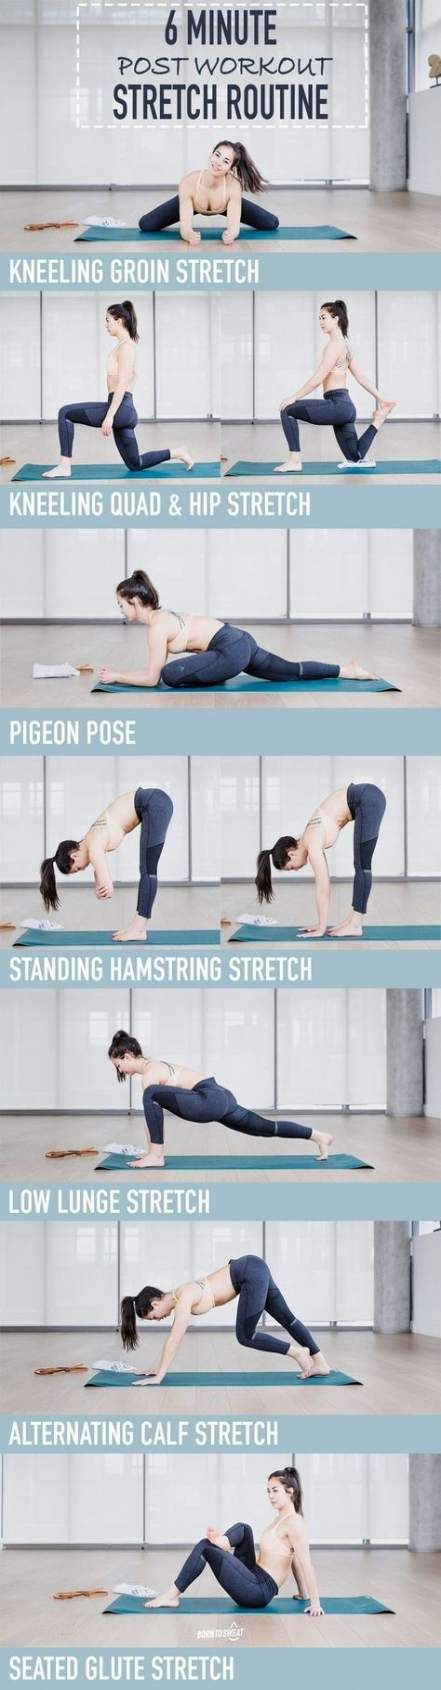 49 ideas fitness motivation pictures body muscle for 2019 #motivation #fitness